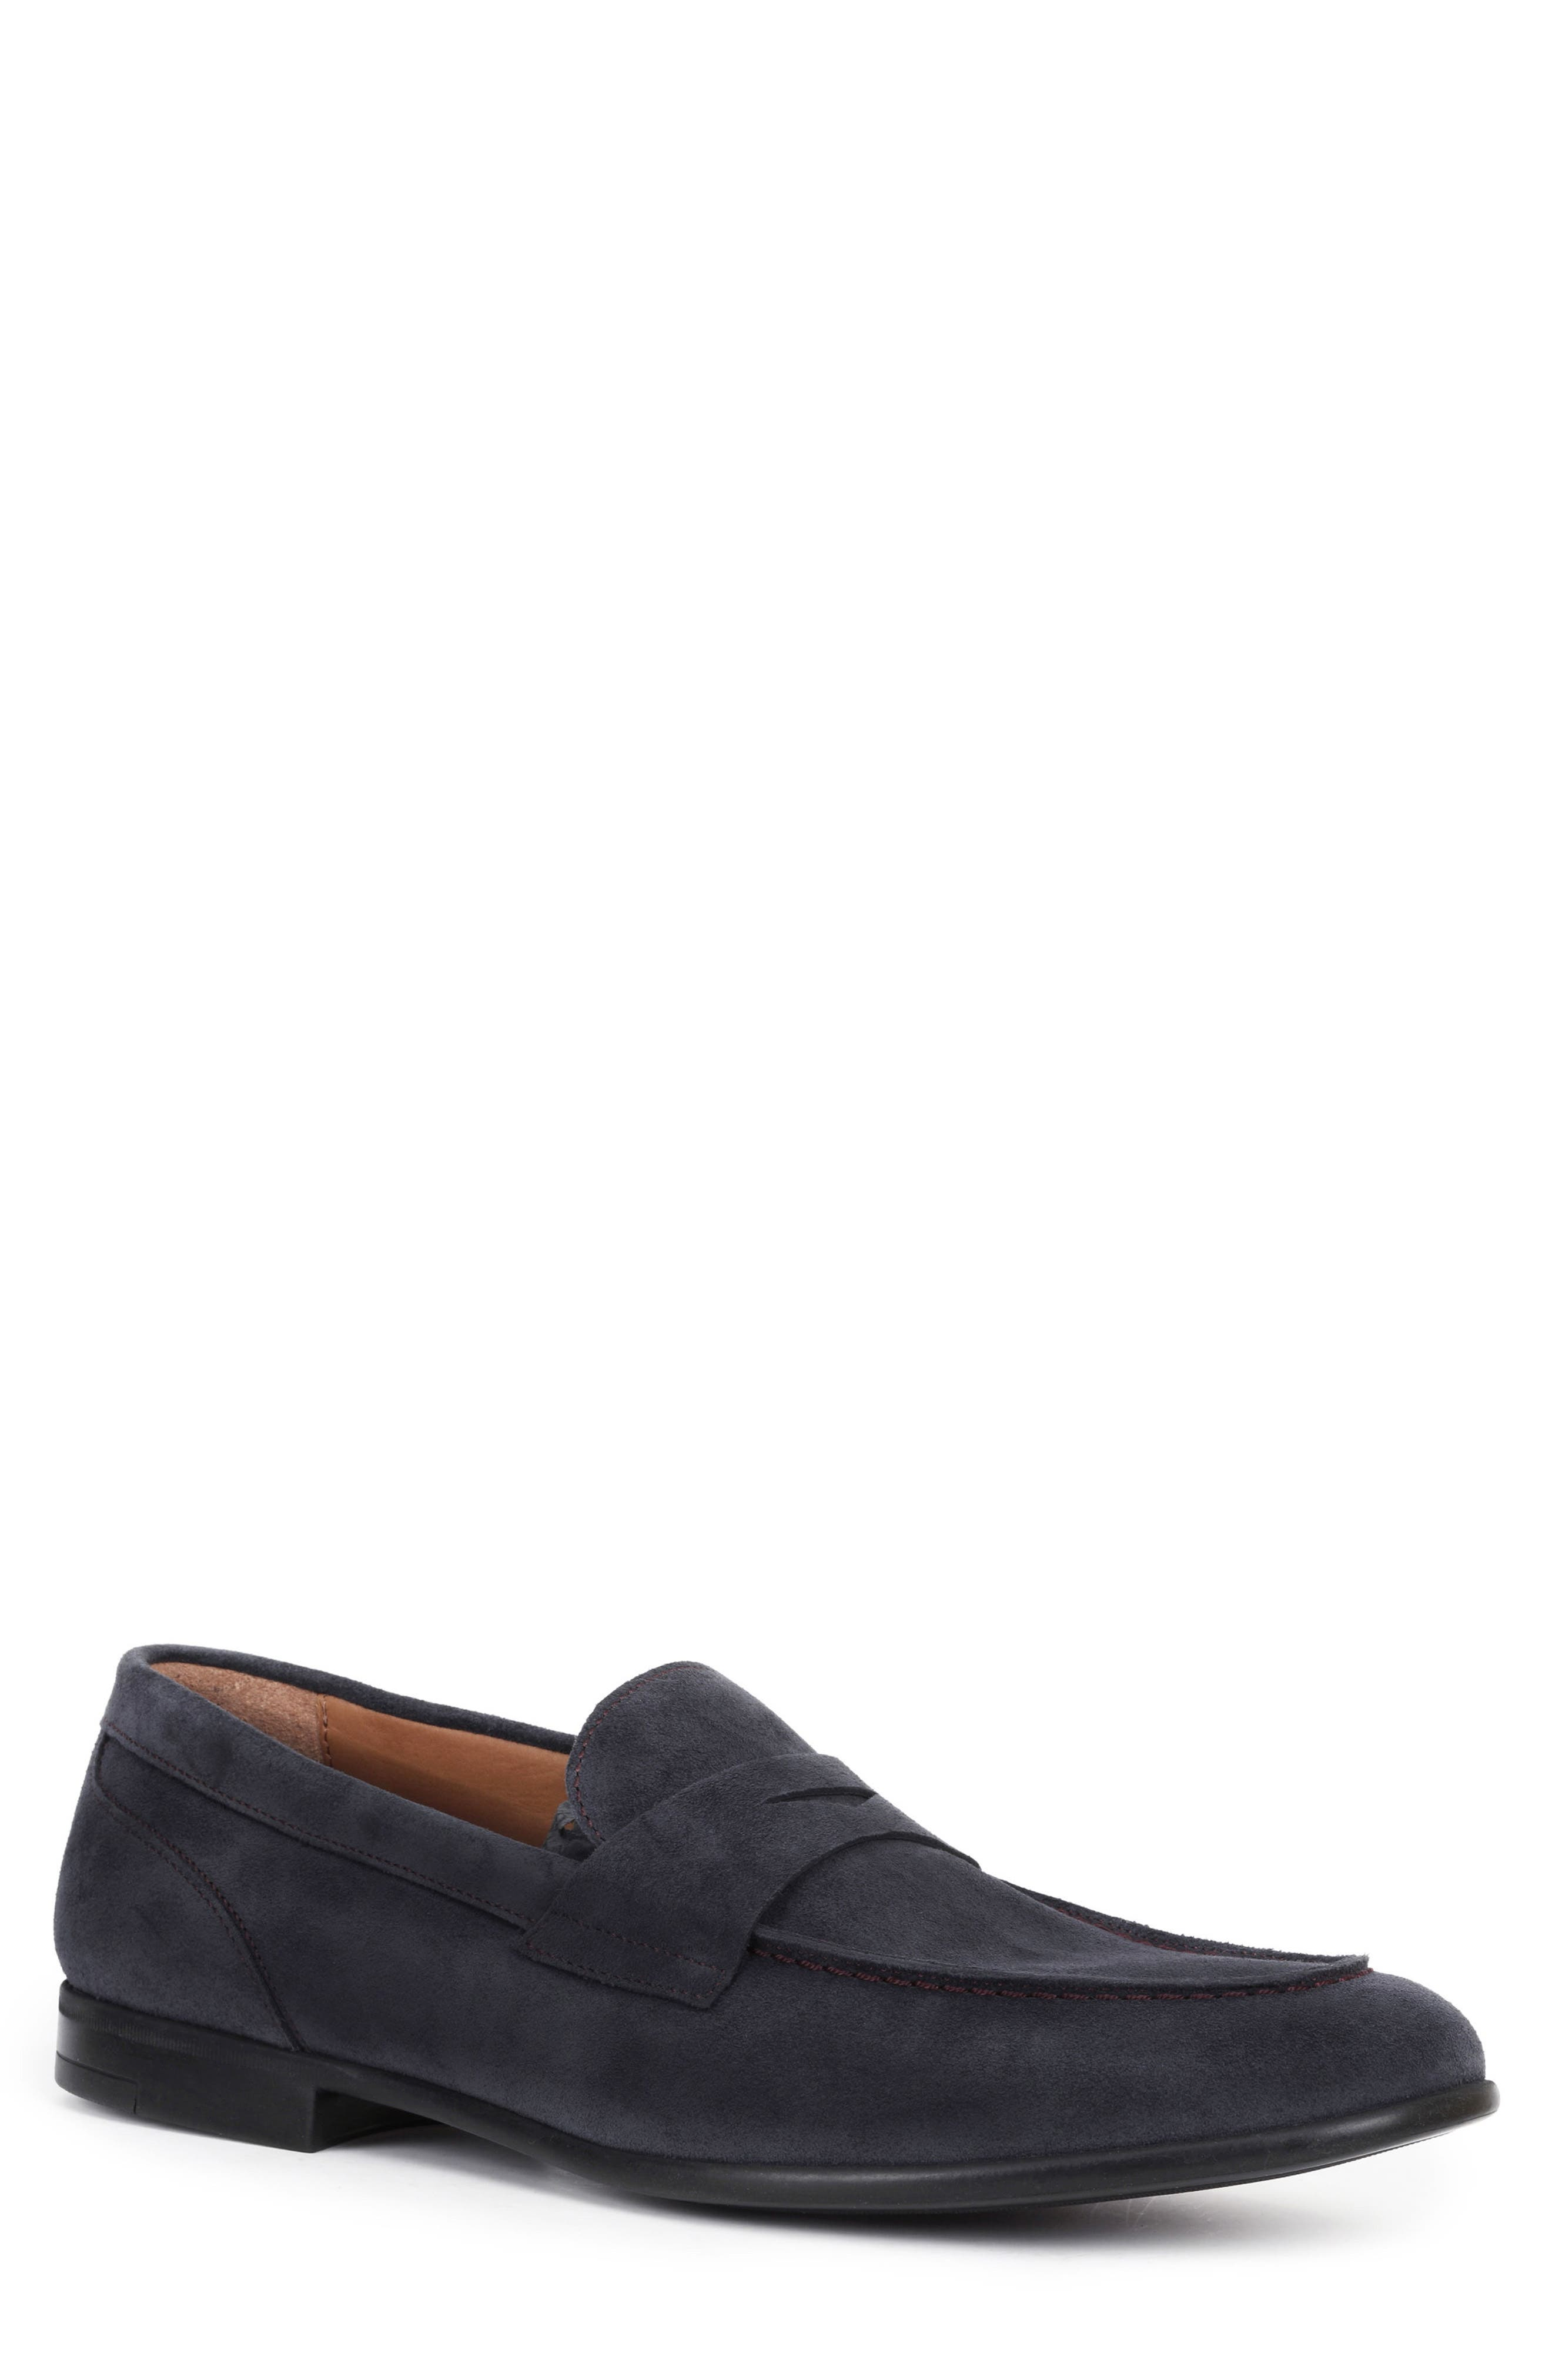 Bruno Magli Silas BM600231 Mens Black Suede Casual Slip On Loafers Shoes